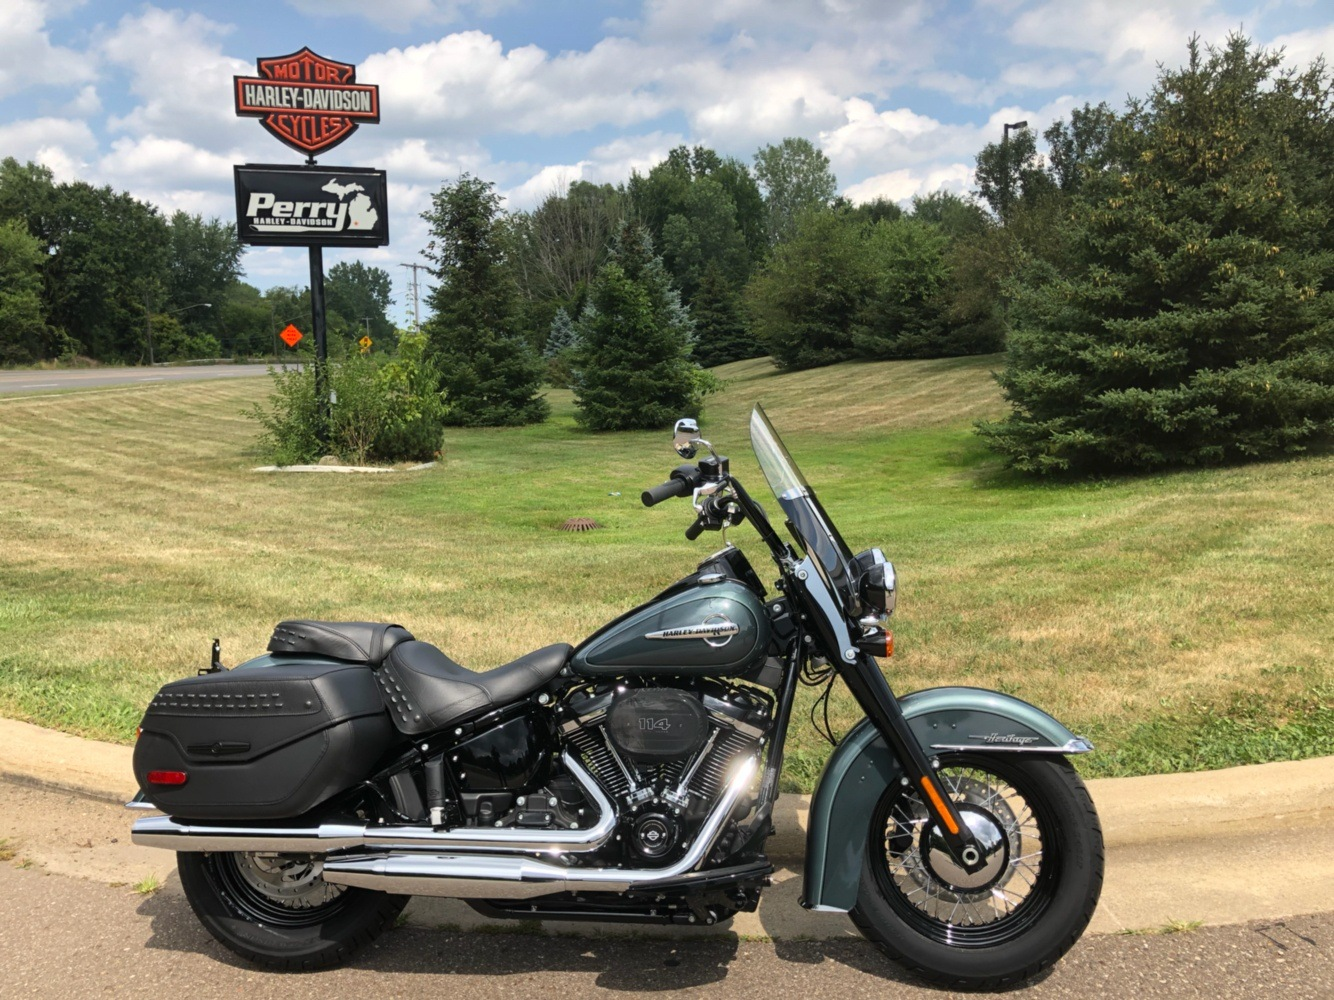 2020 Harley-Davidson HERITAGE CLASSIC 114 in Portage, Michigan - Photo 1